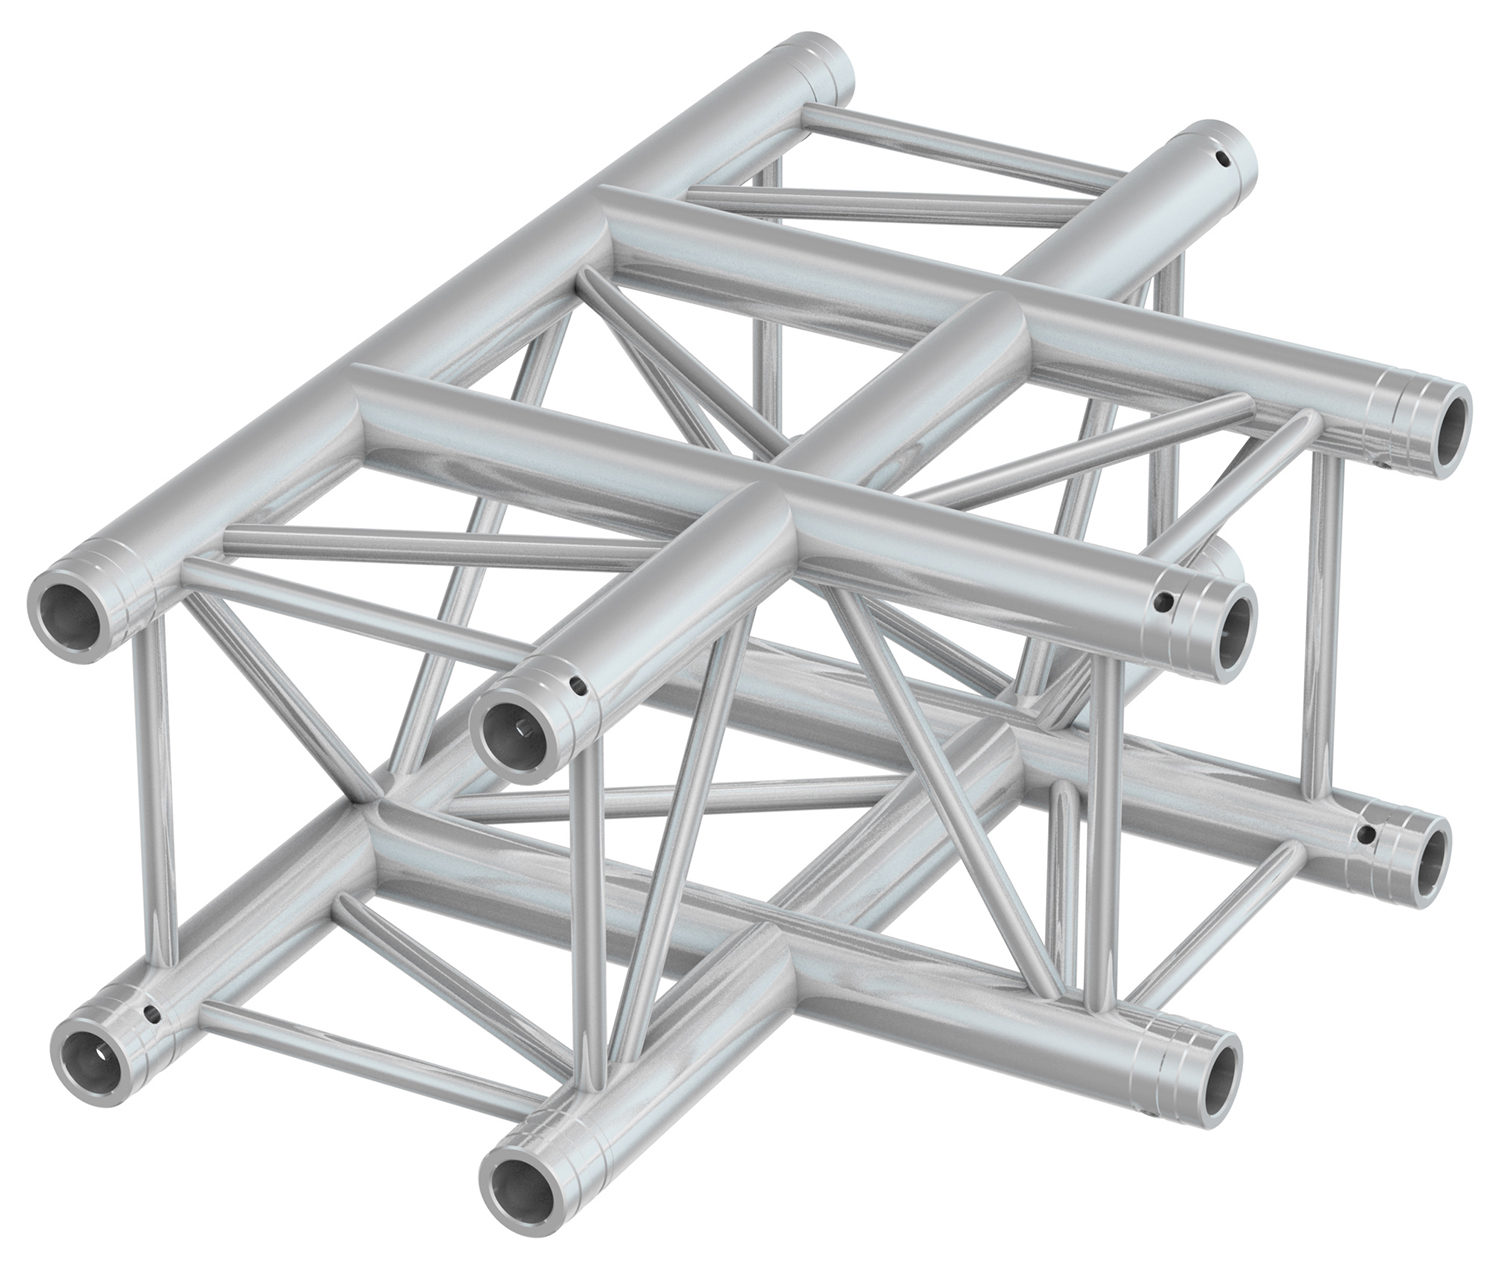 BeamZ Professional P30-T35 Truss 3-way T-junction